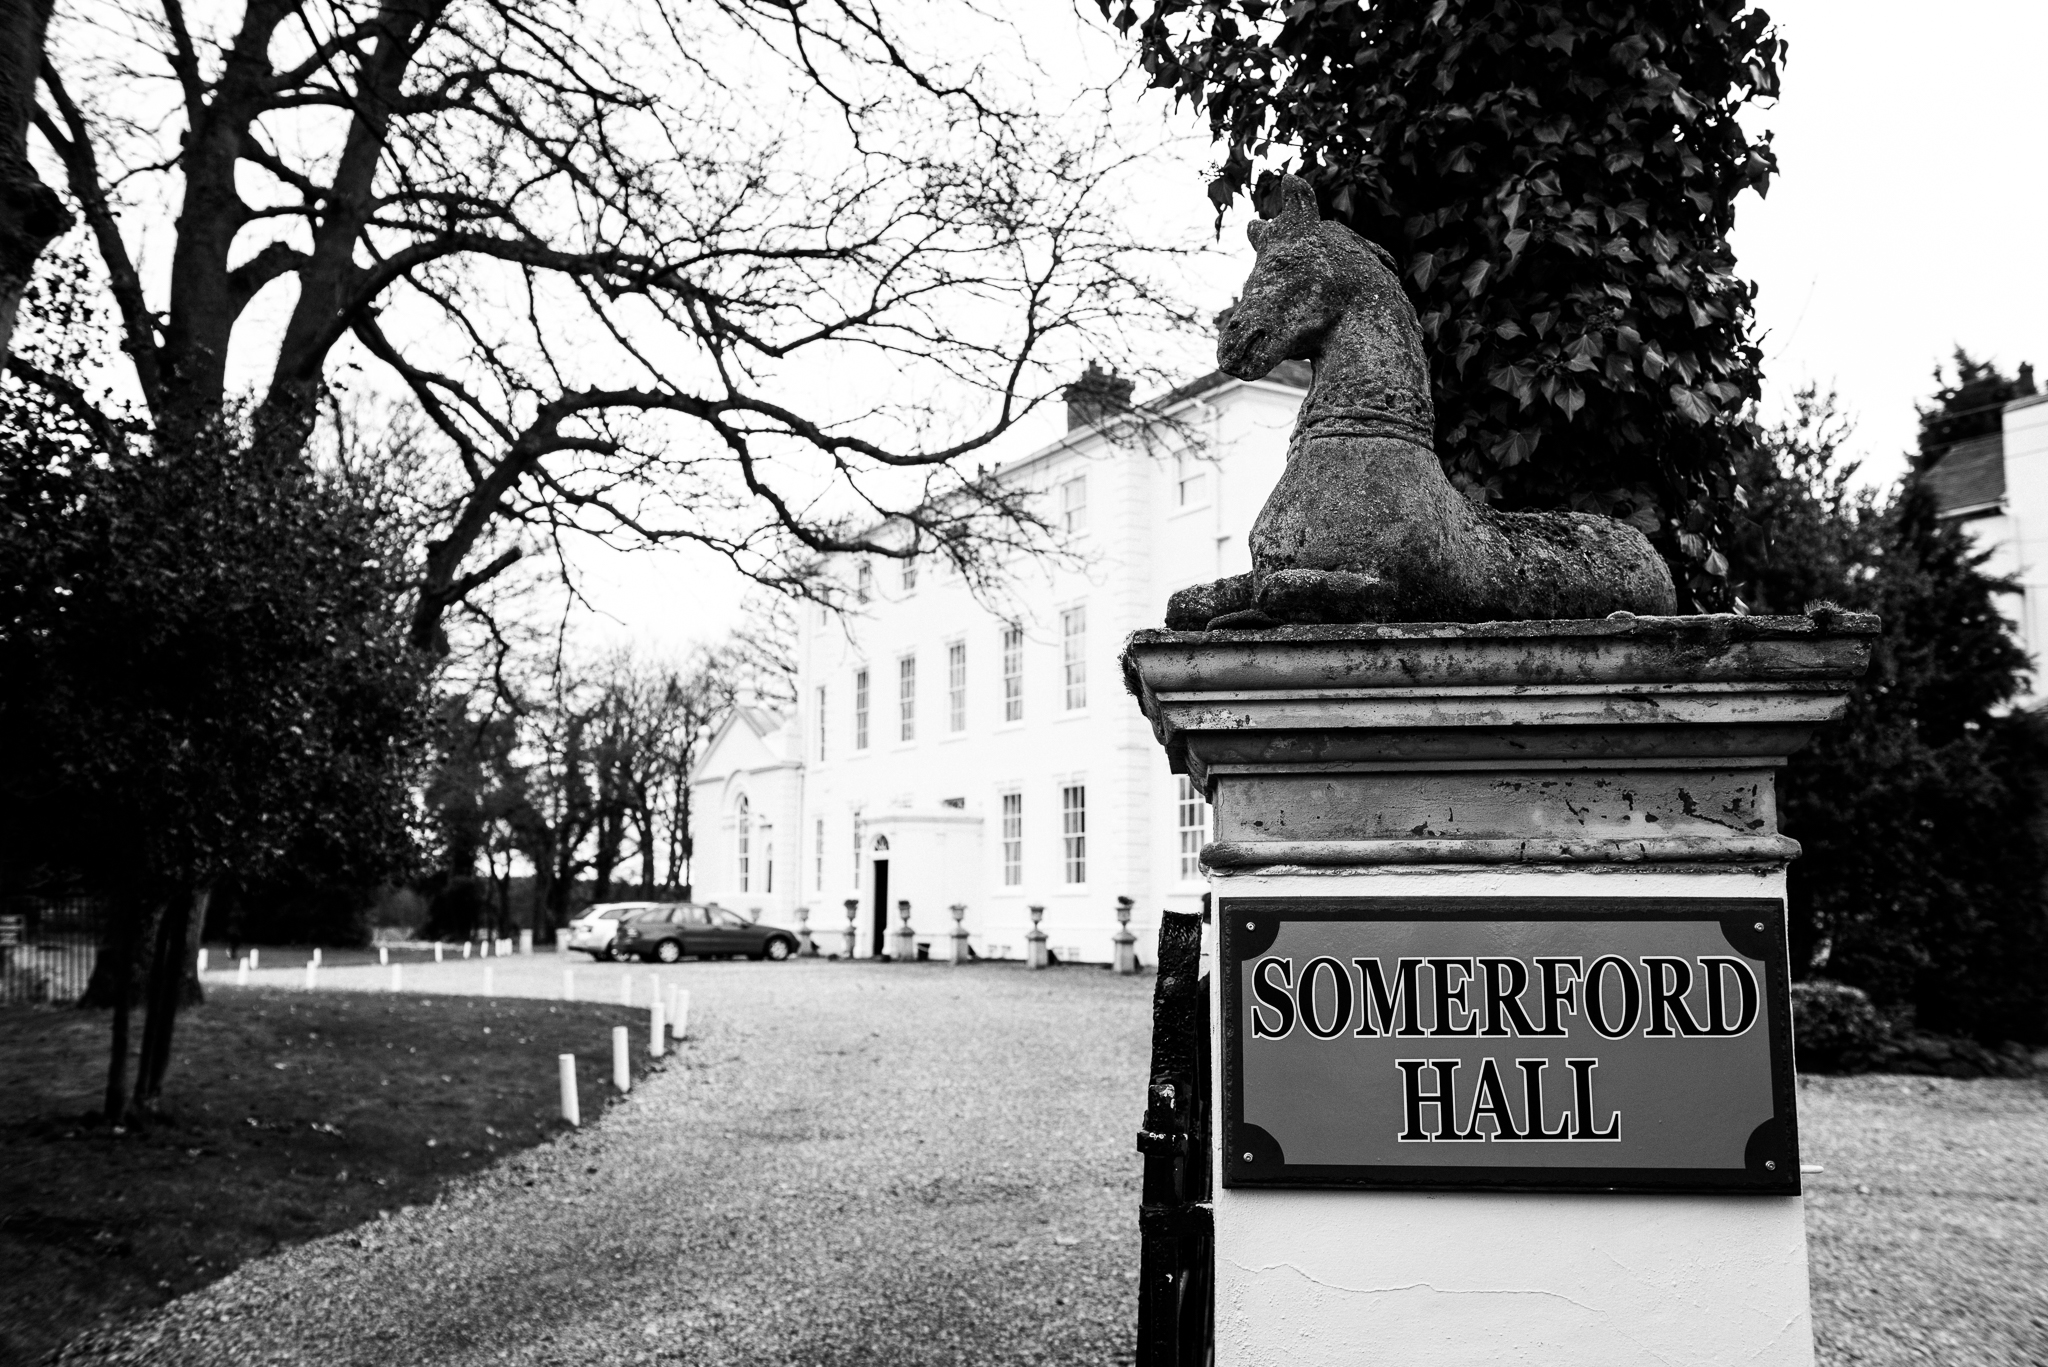 English Winter Wedding Photography at Somerford Hall, Staffordshire Red Bus Double Decker Kilts Bagpiper-1.jpg